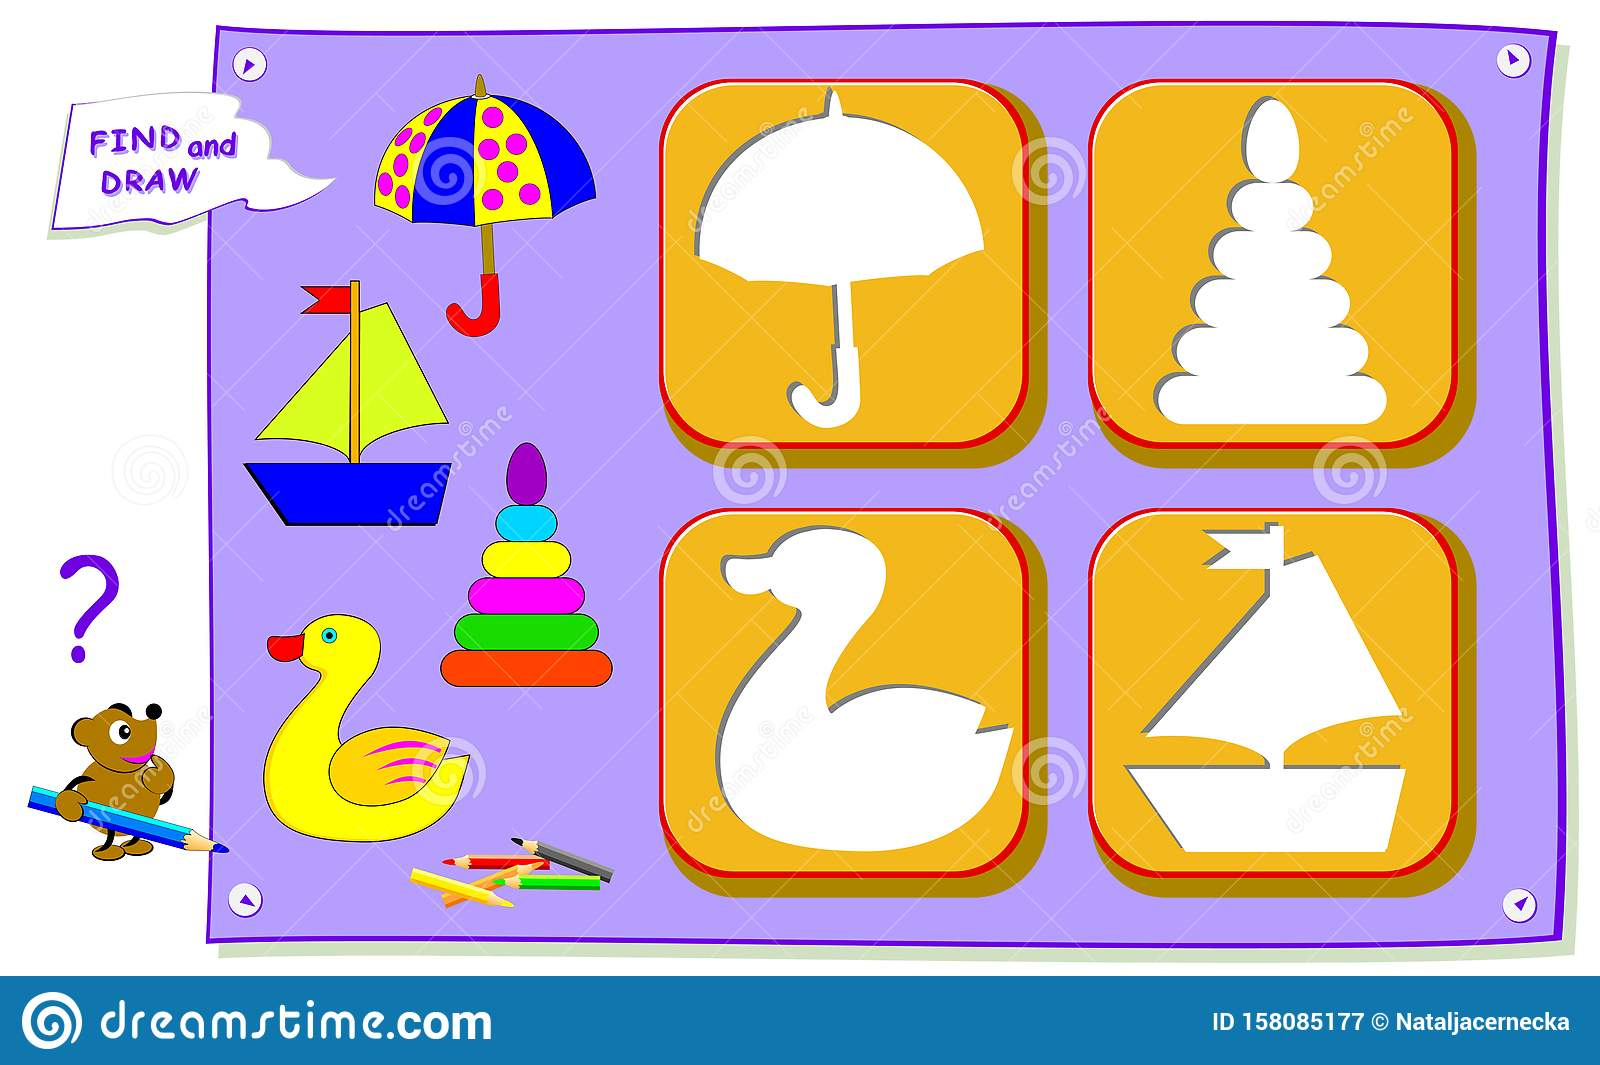 Logical Puzzle Game For Baby Coloring Book Find The Place